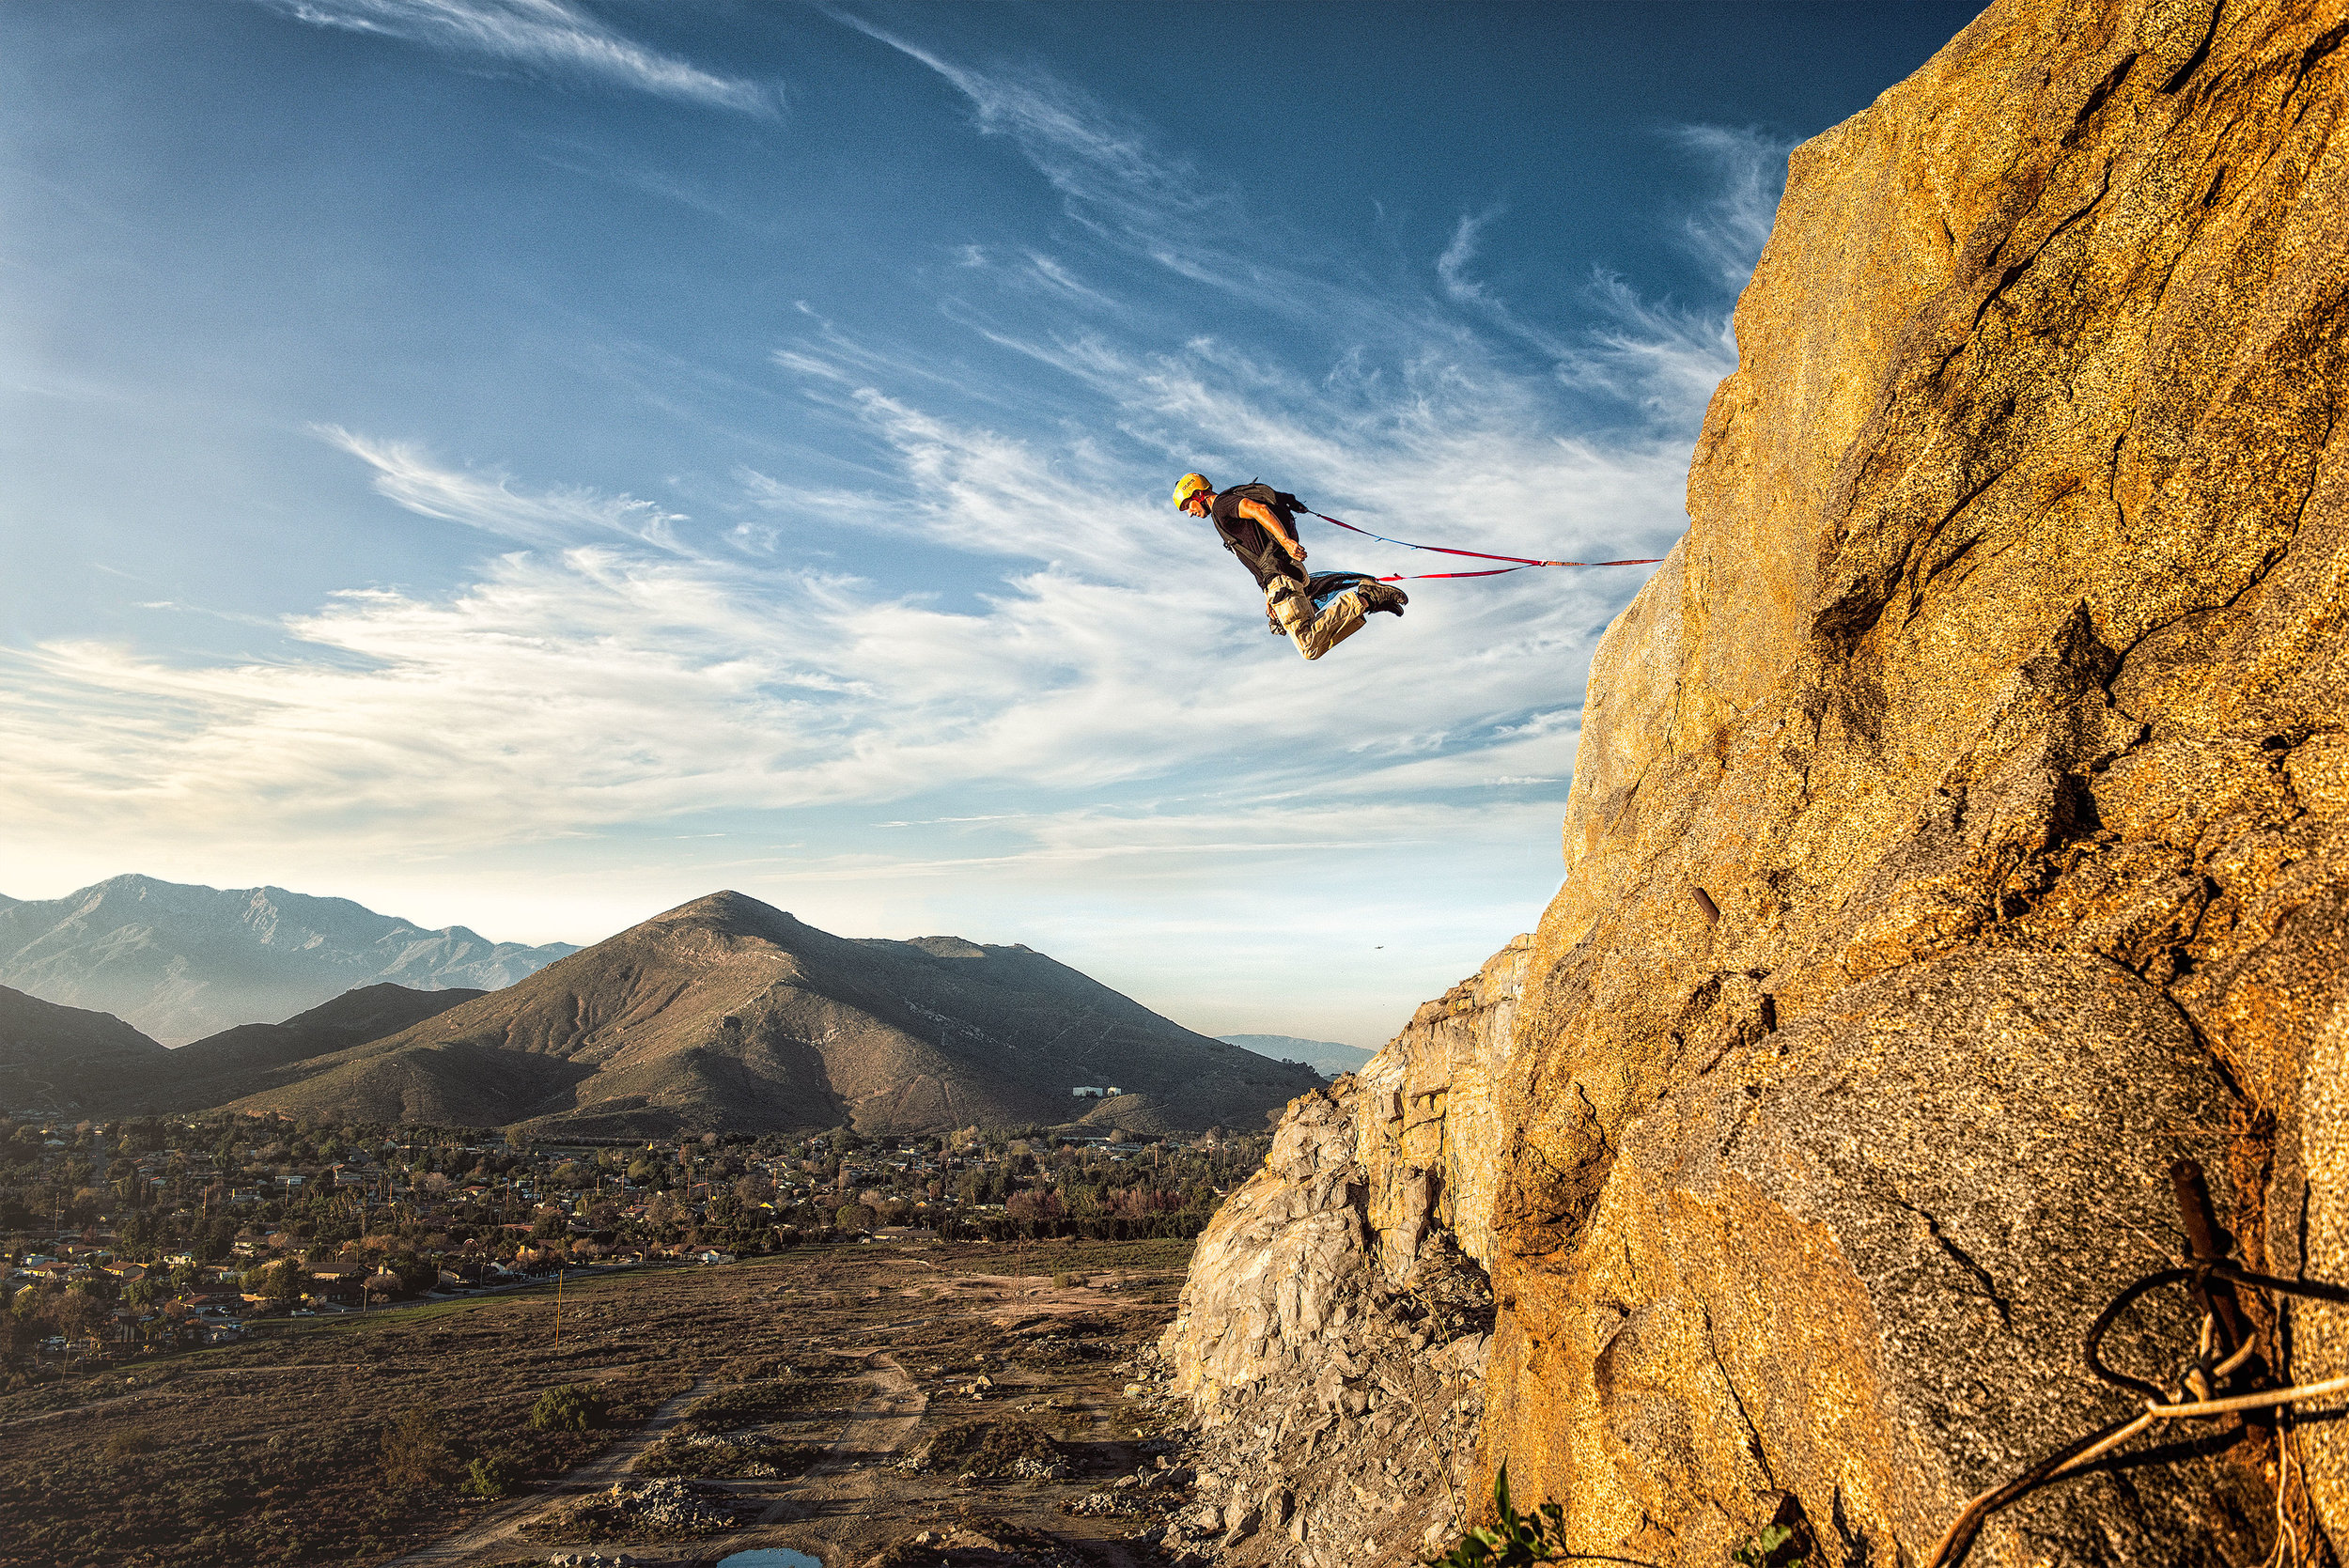 austin-trigg-wing-suit-base-jump-fly-socal-quarry-mountains-parchute.jpg